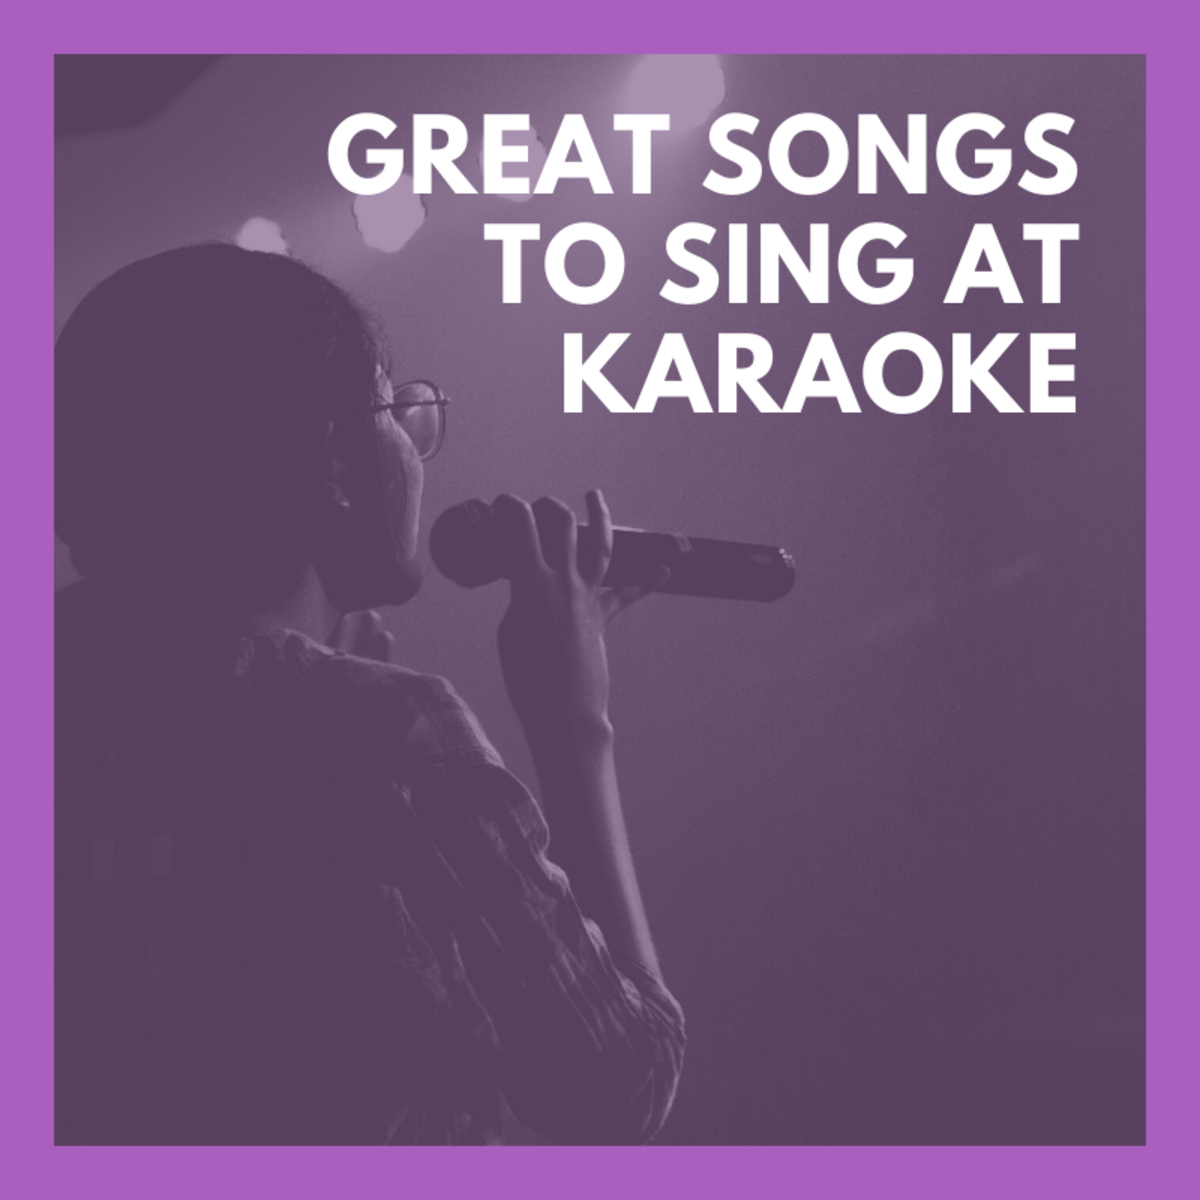 These songs are real crowd-pleasers at karaoke.